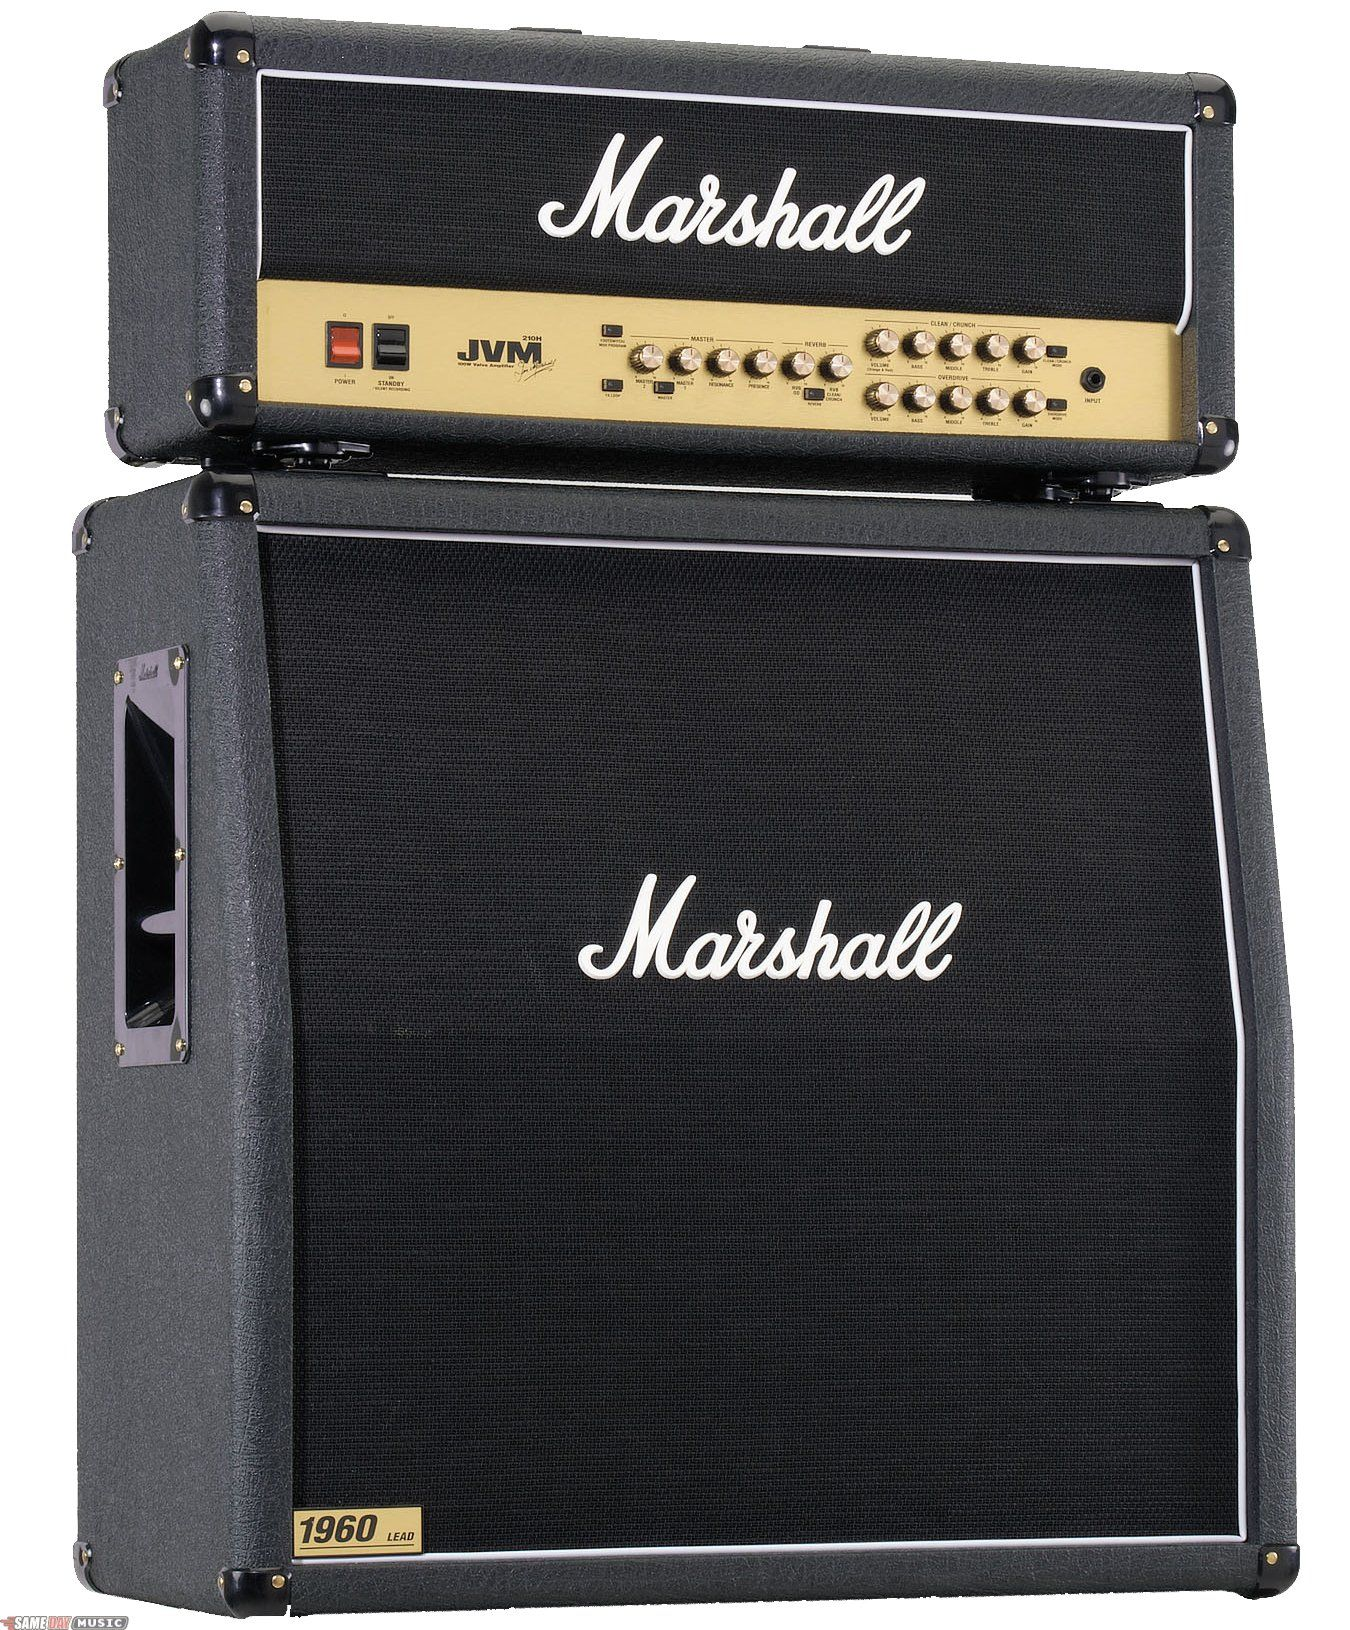 marshall guitar amp jvm i want this your choice pinterest guitar amp guitars and. Black Bedroom Furniture Sets. Home Design Ideas